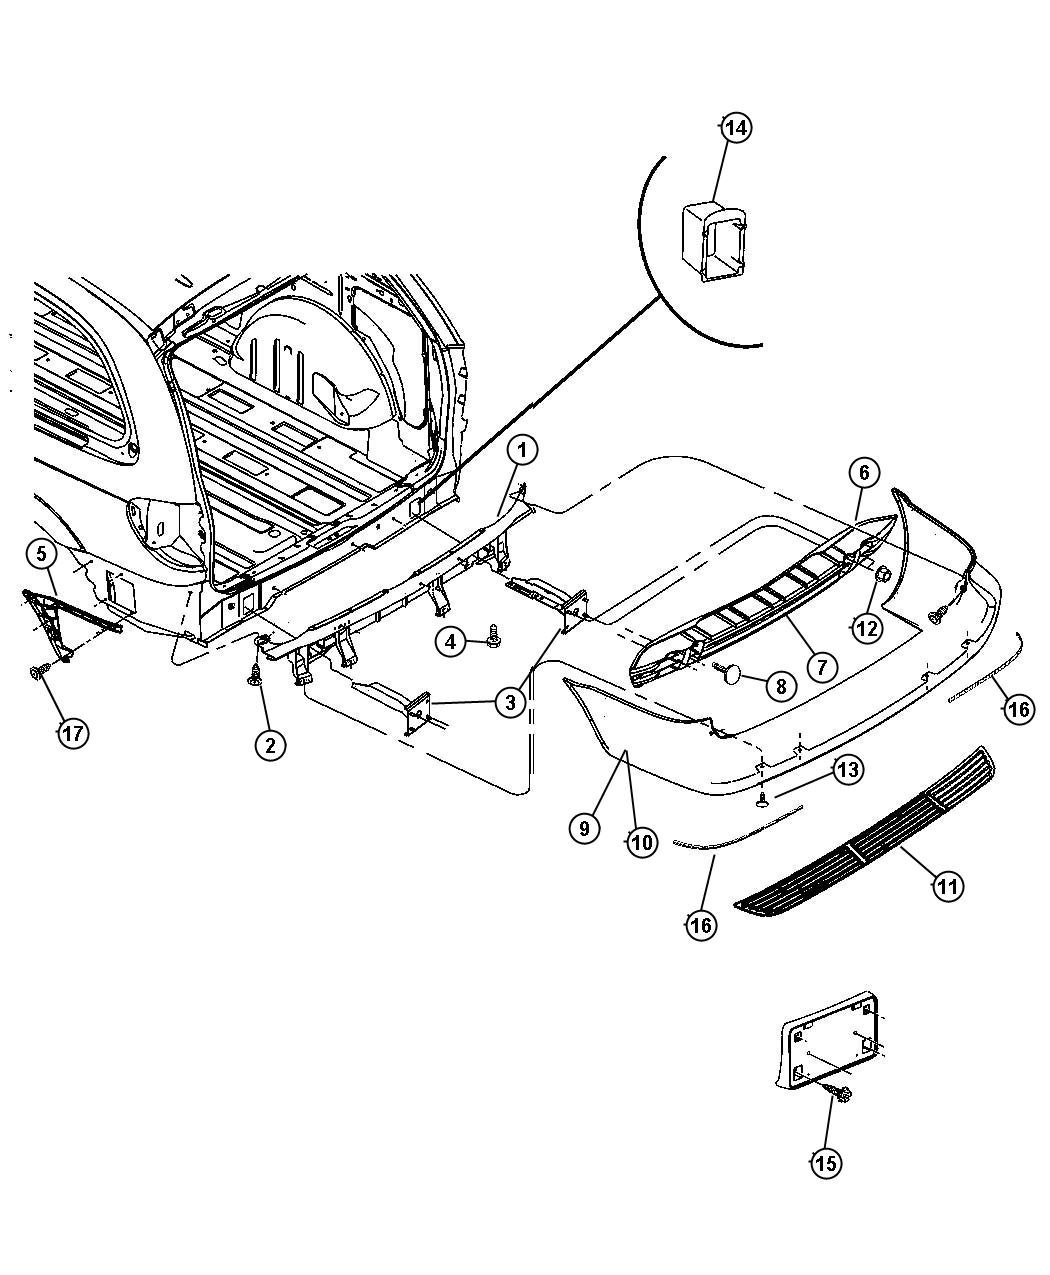 2012 toyota highlander liftgate parts diagram  toyota